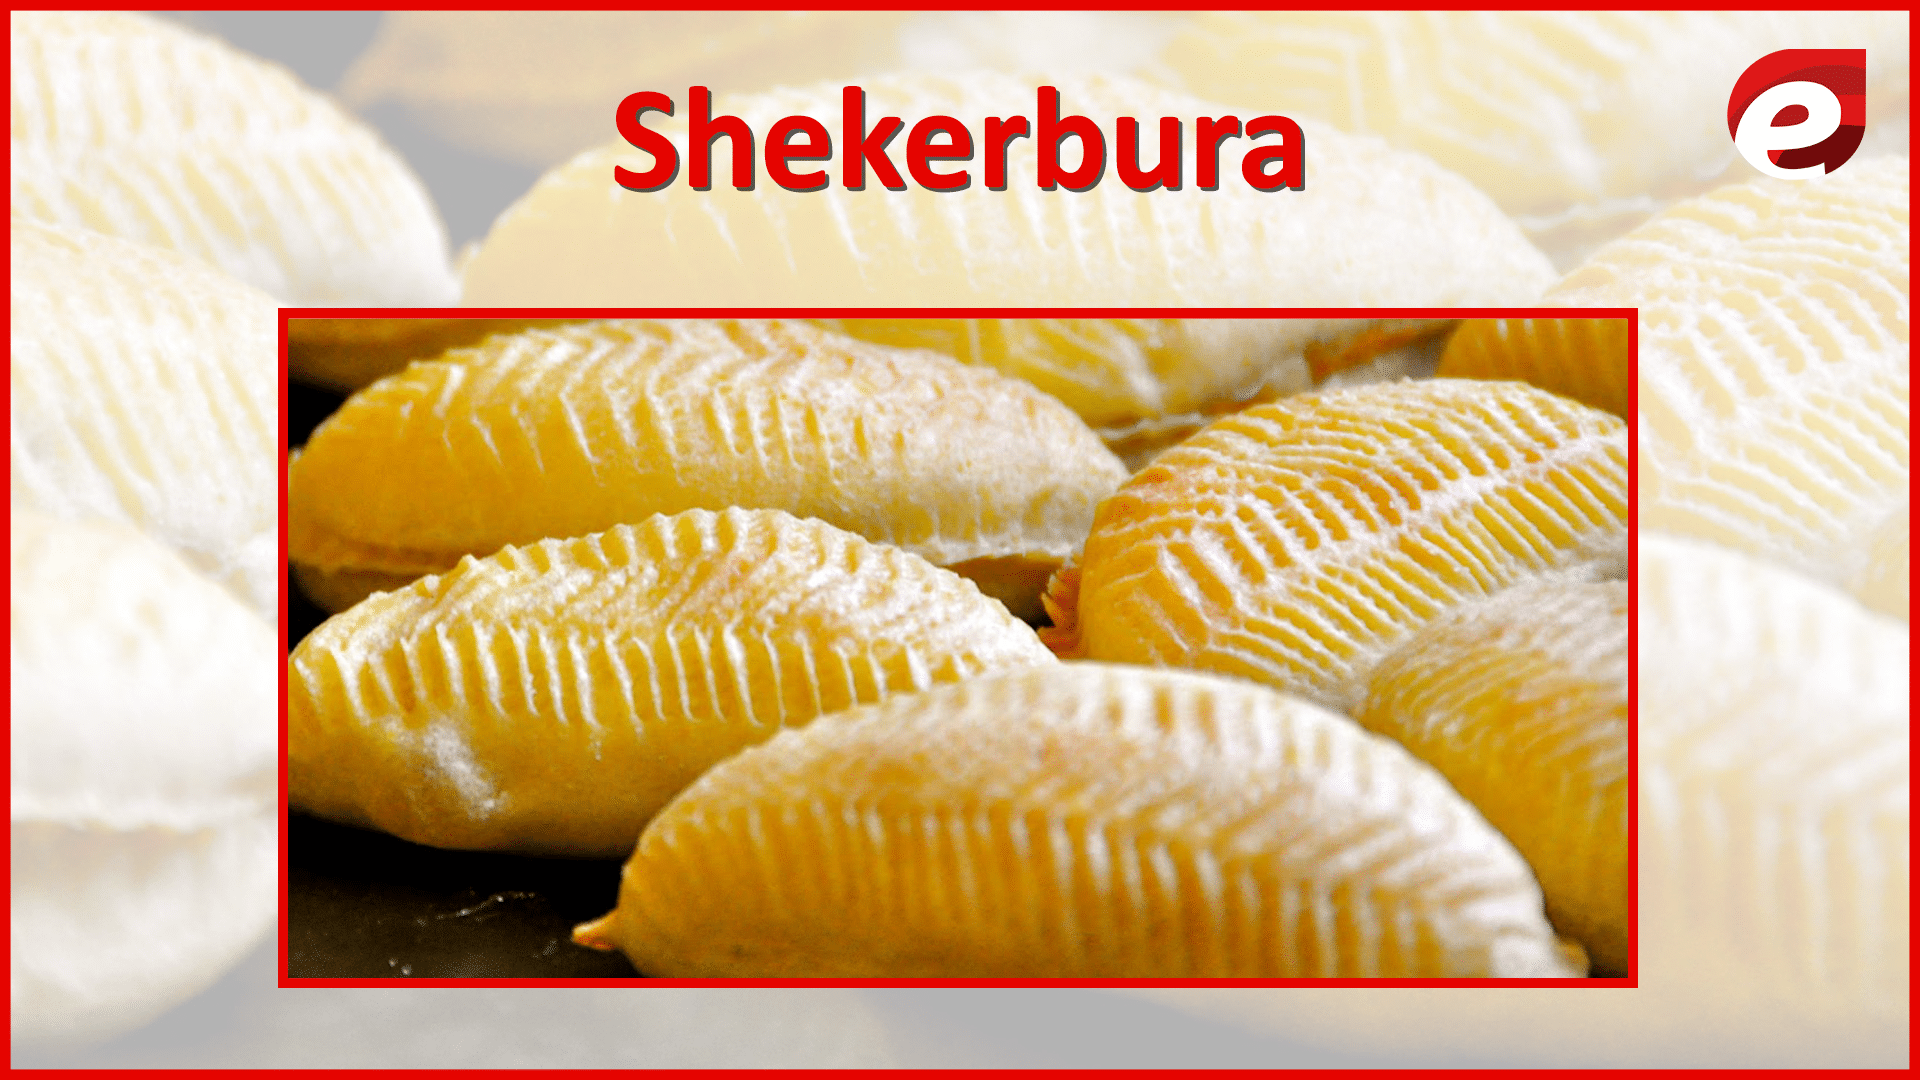 Azerbaijan food- shekerbura